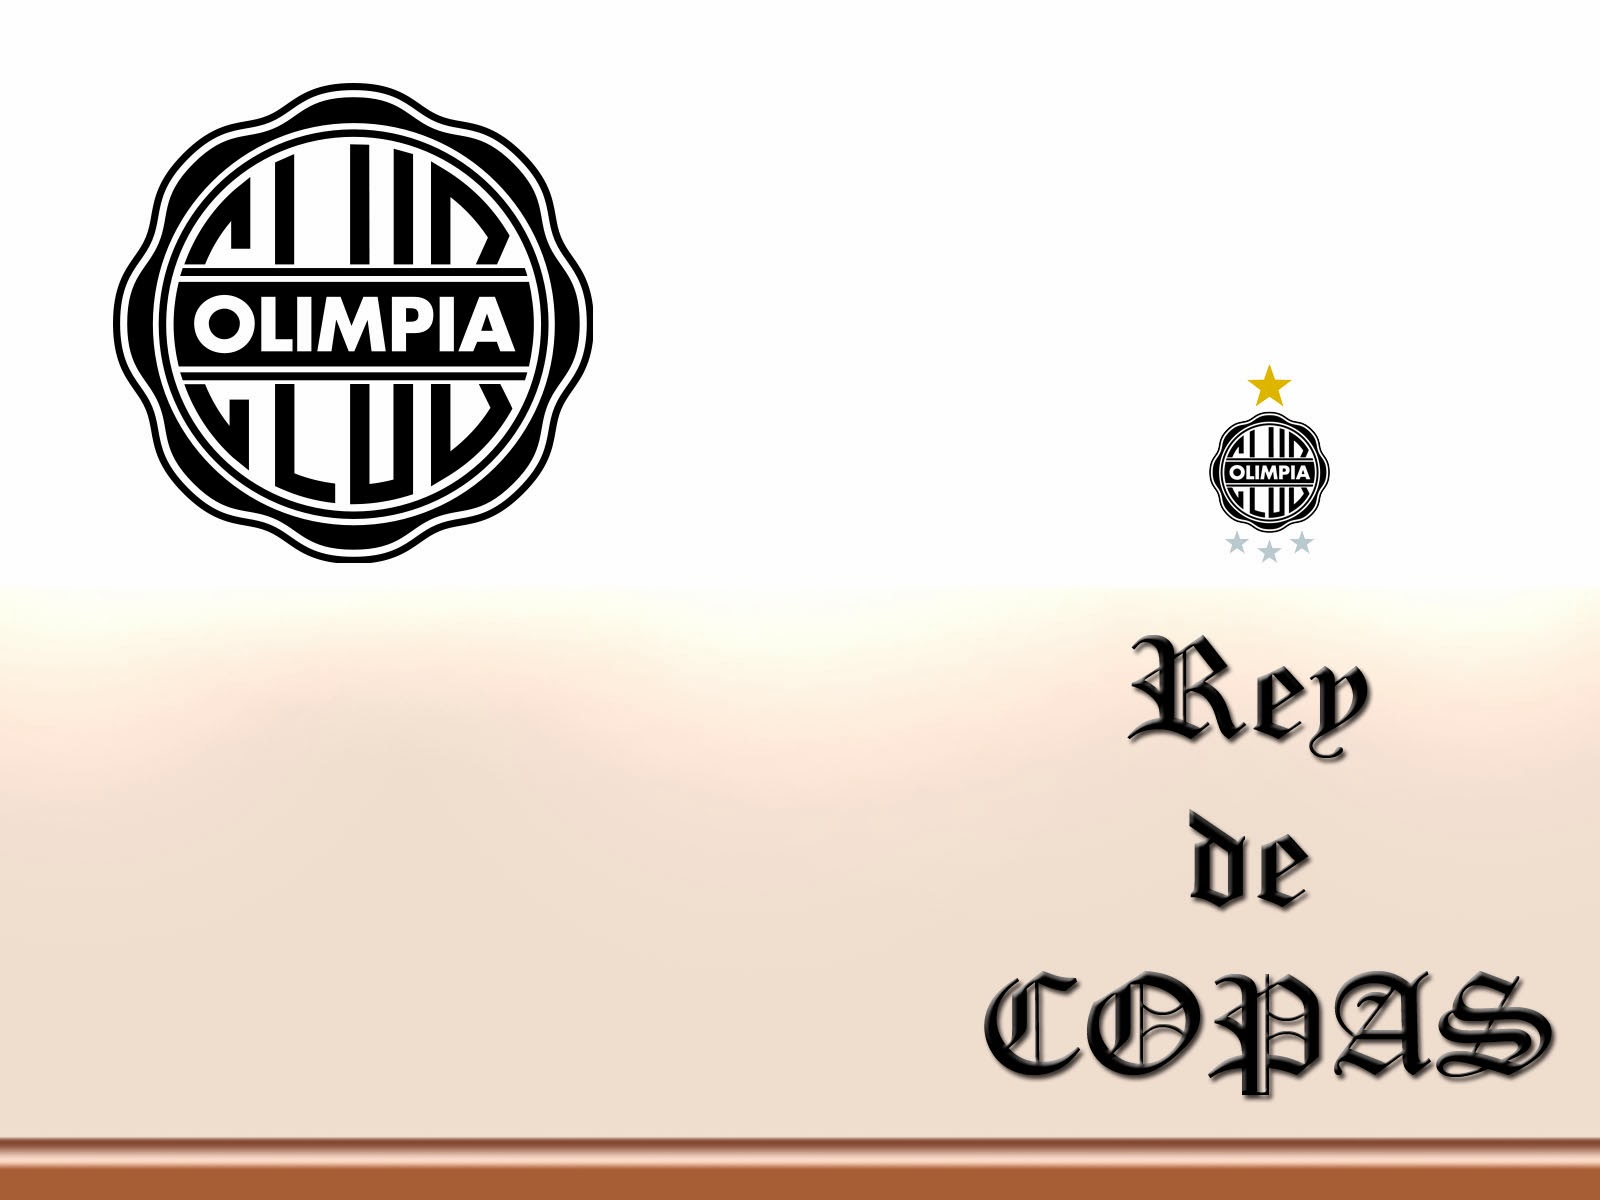 Blogolimpia Bo Mi Club Olimpia Wallpapers